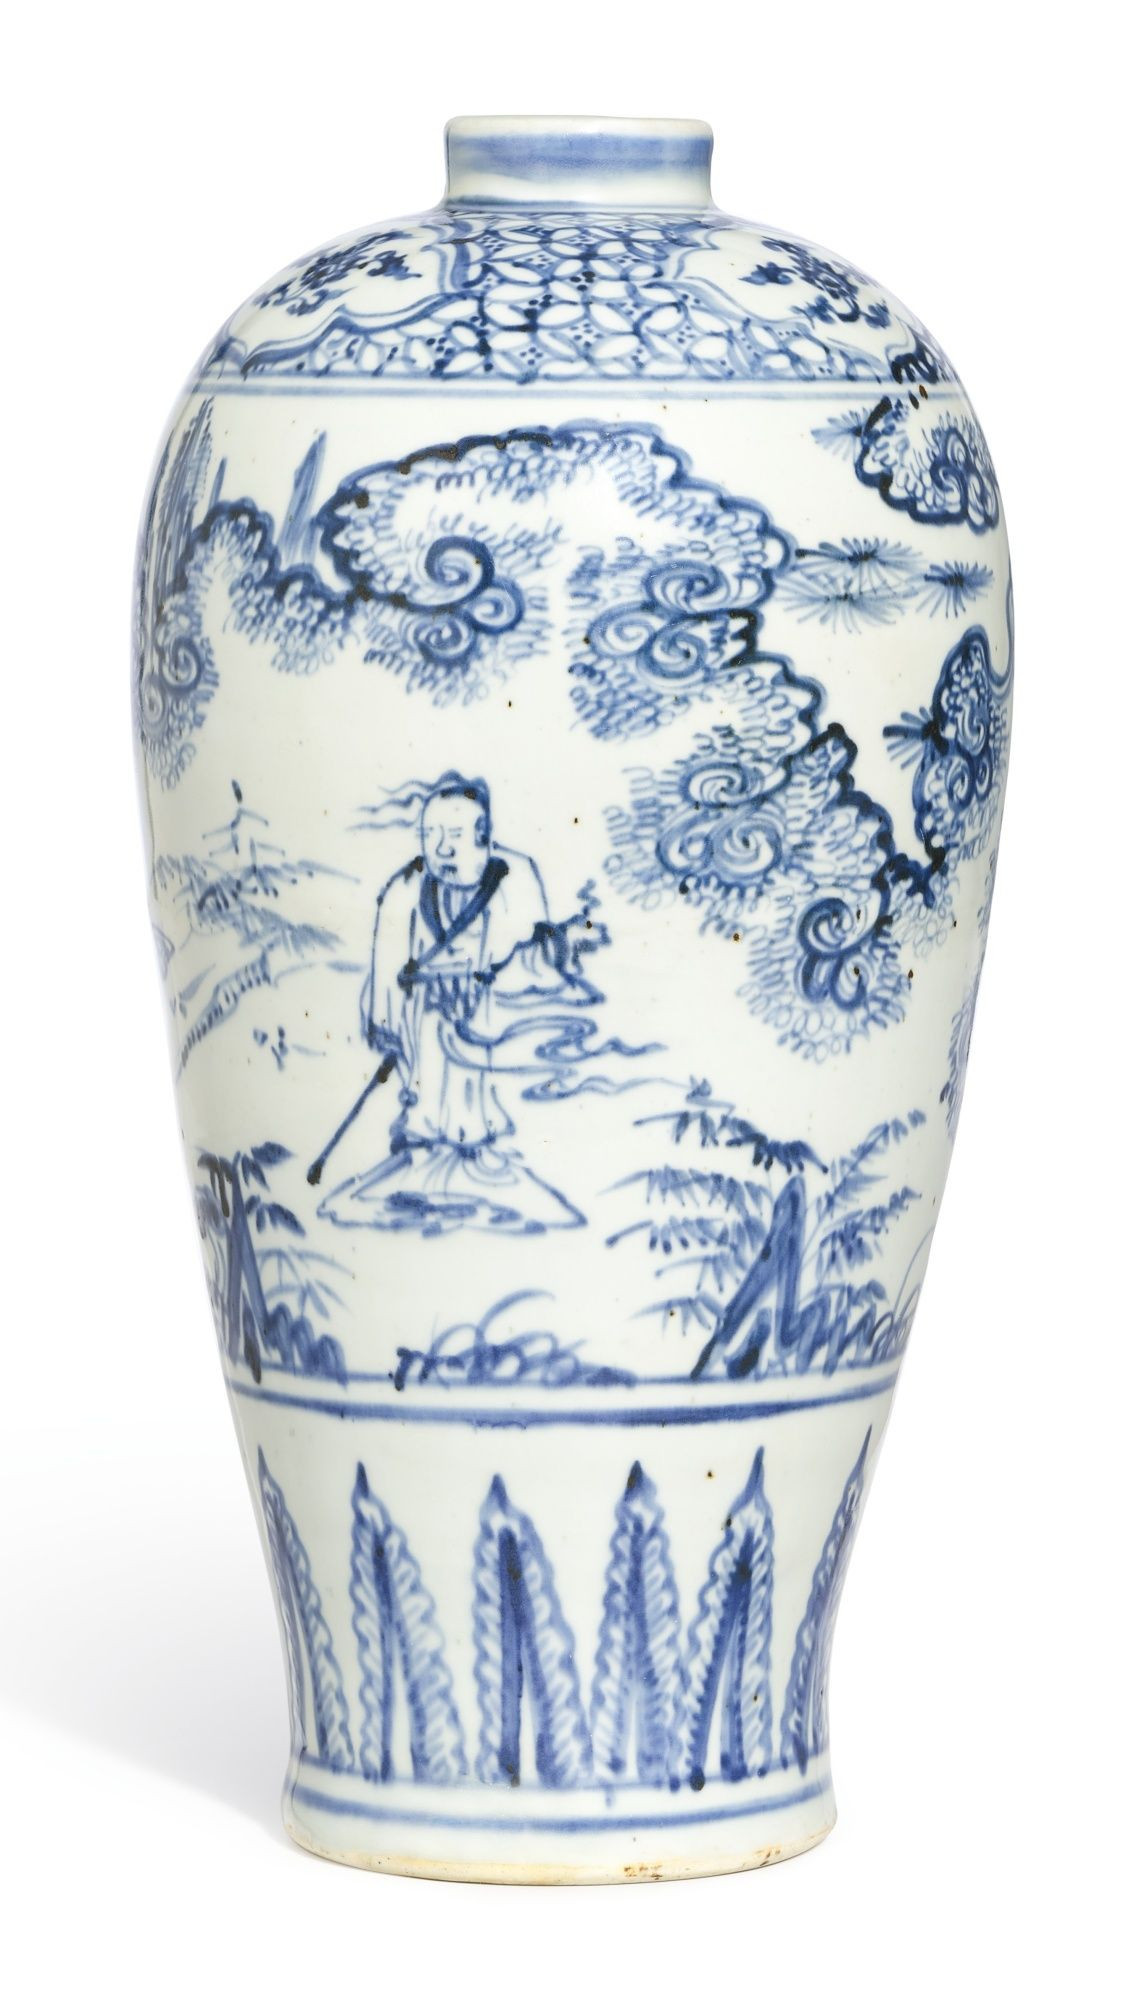 Ming Dynasty Vase for Sale Of Antique White Vase Gallery the Birds and the Bees Vintage Pottery with Regard to Antique White Vase Pics A Blue and White Figure Meiping Br Ming Dynasty 15th Century Of